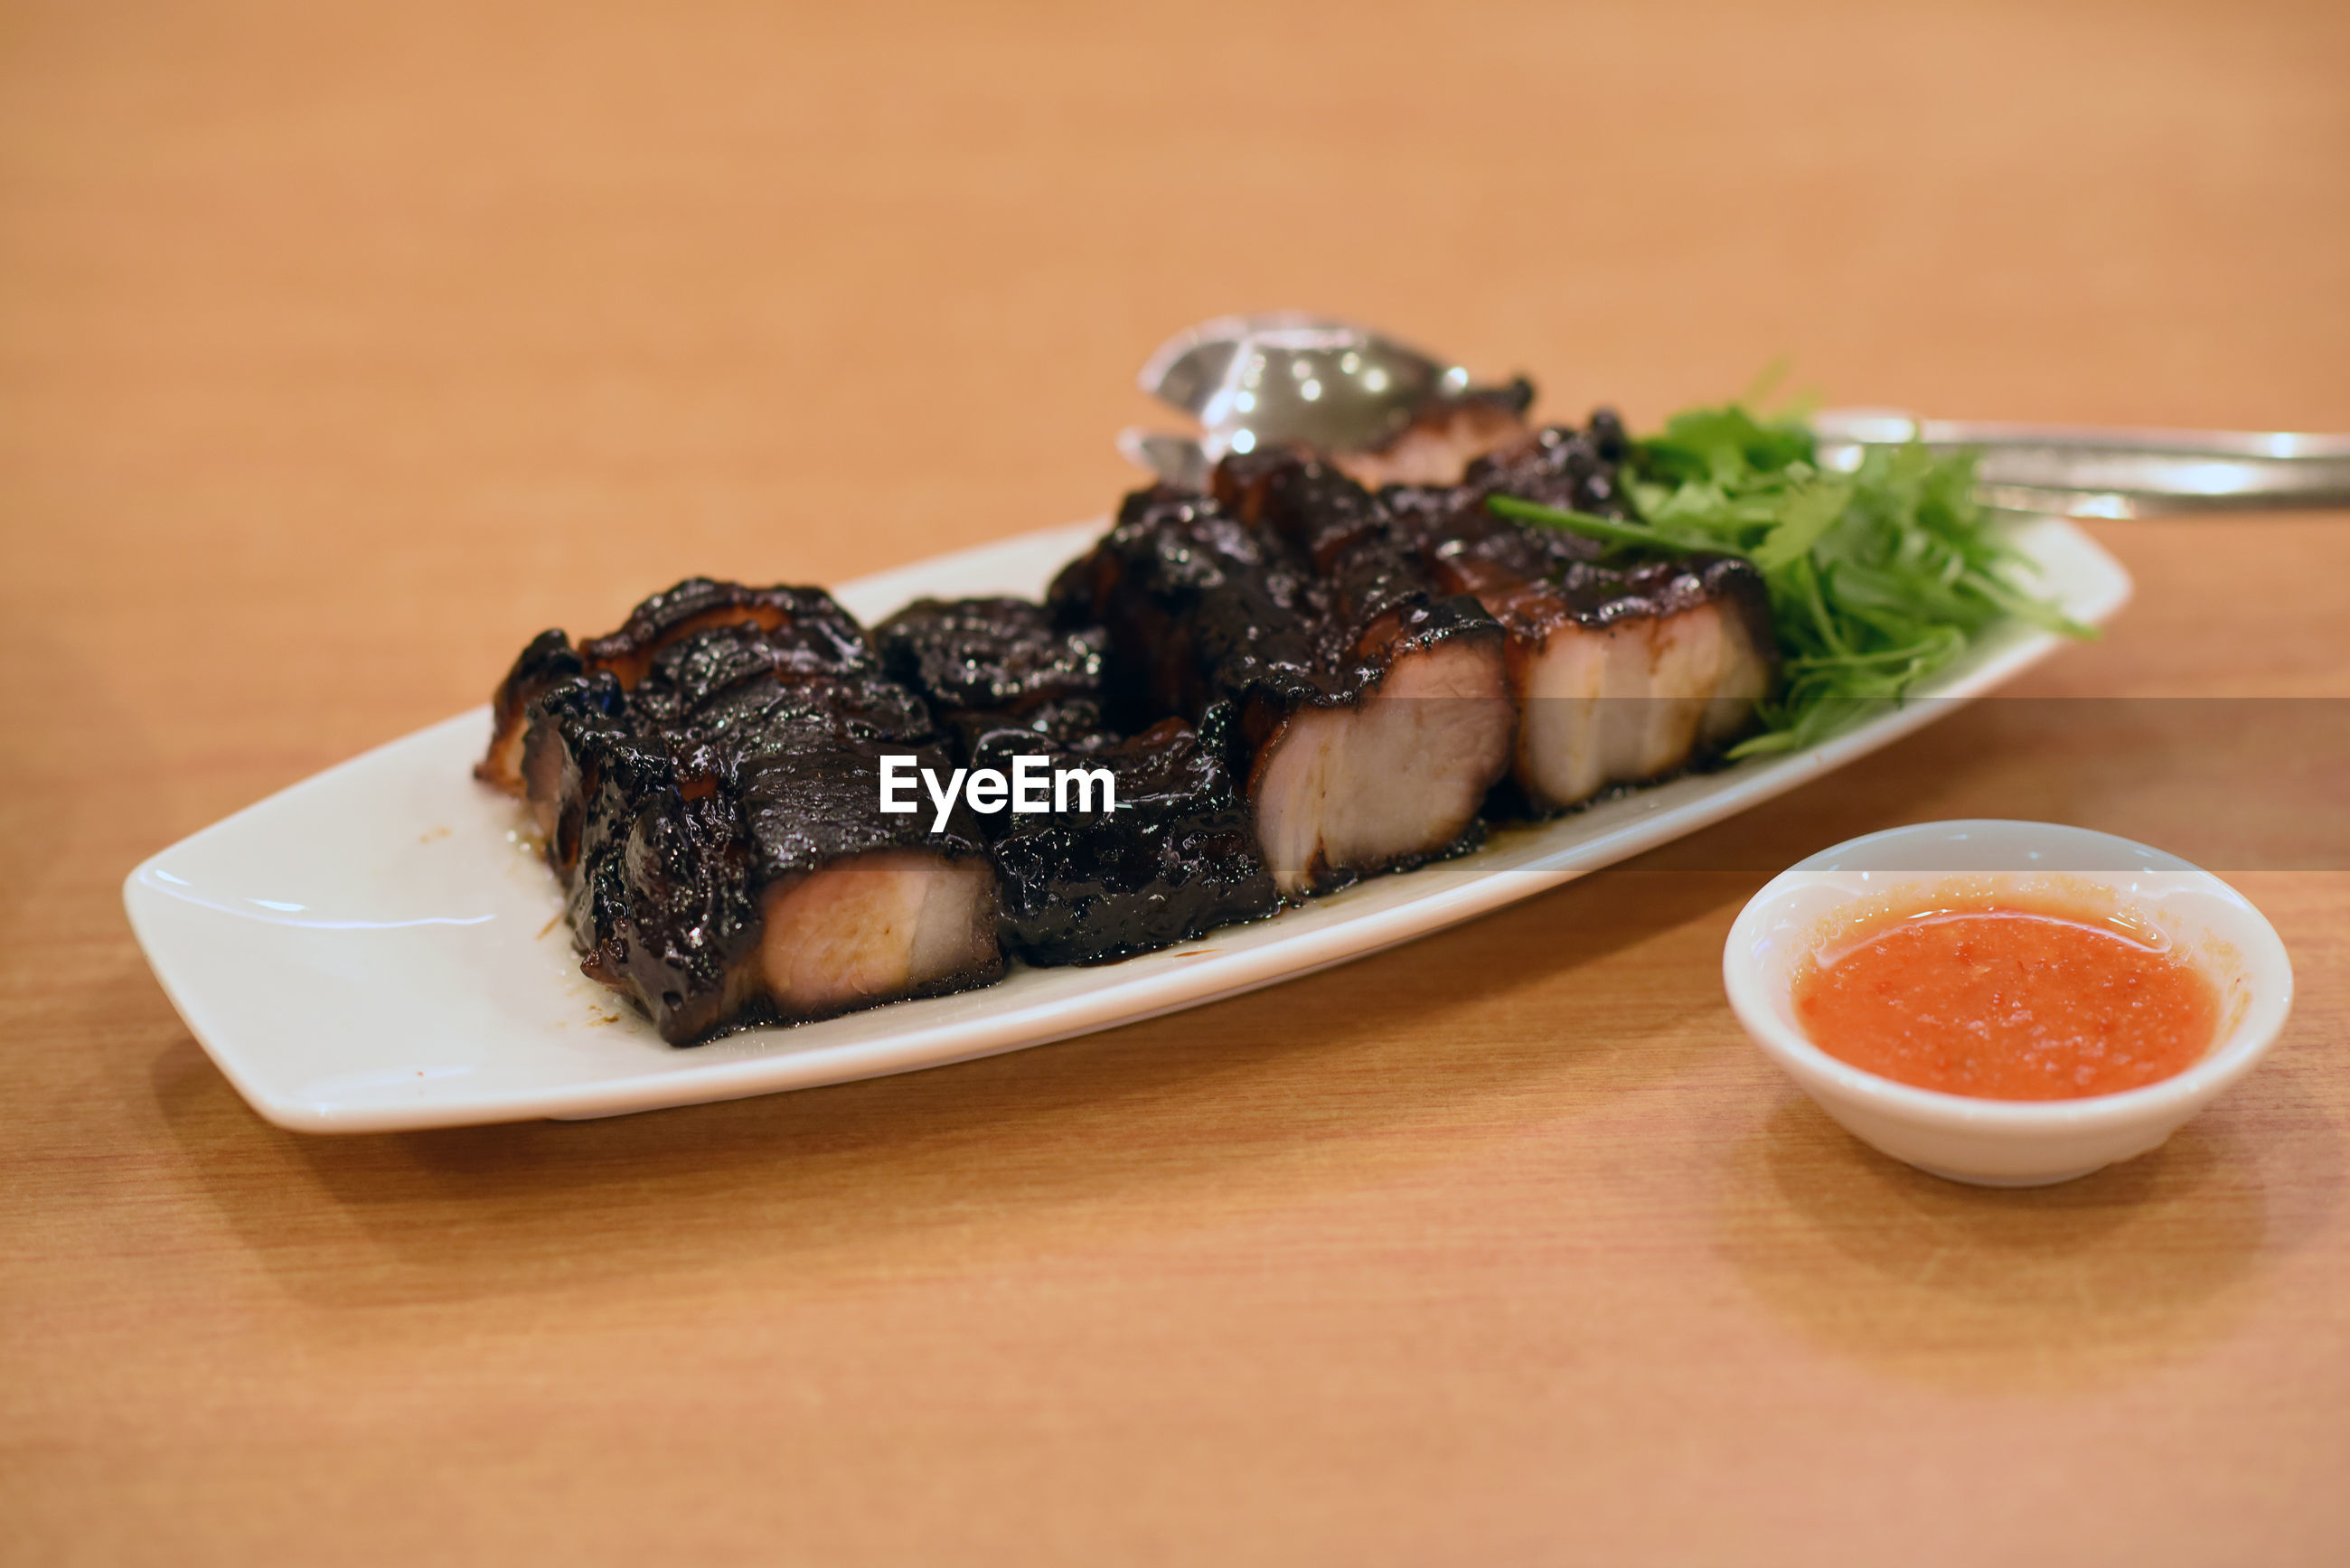 Close-up of roasted pork belly served on wooden table